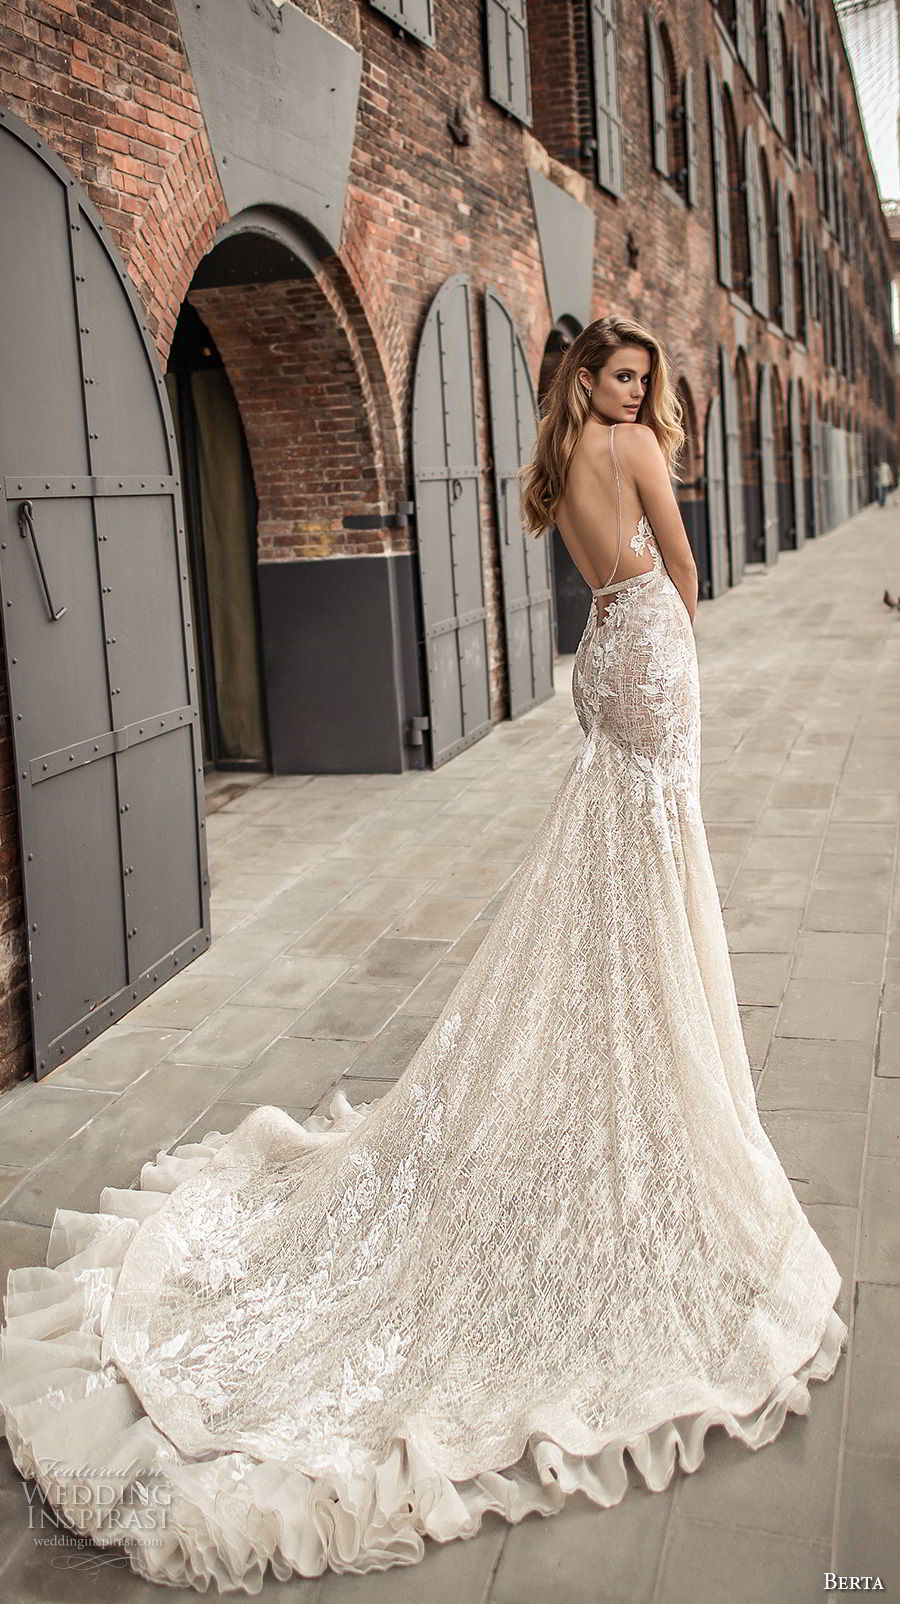 d2a408269d4 berta spring 2018 bridal sleeveless deep plunging v neckline full  embellishment sexy elegant fit and flare